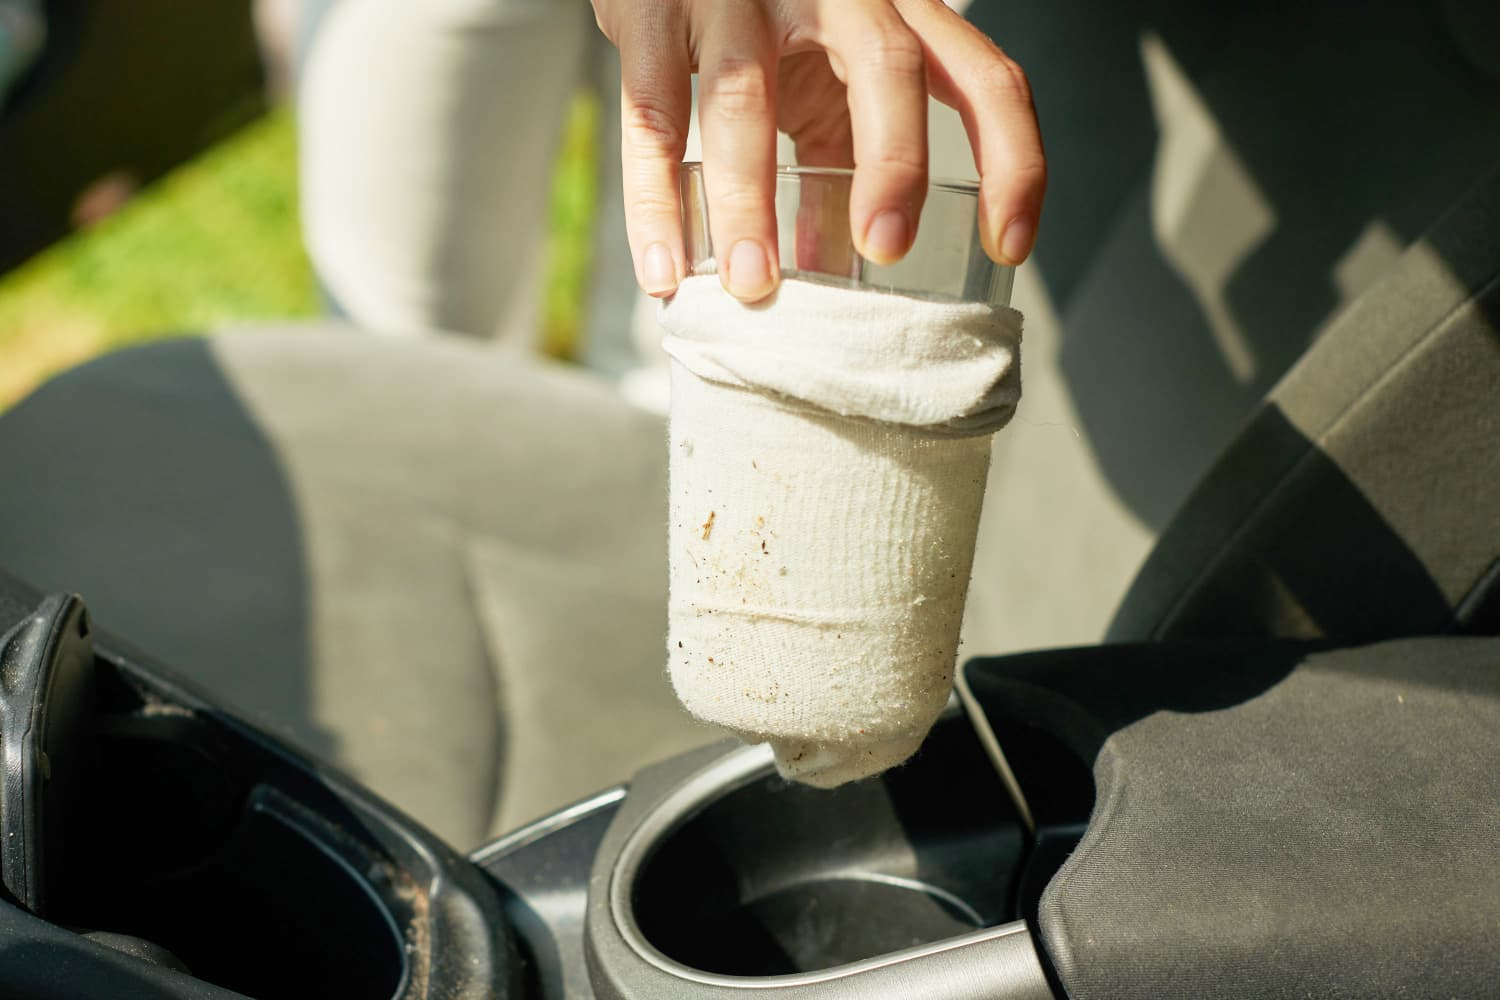 Your Car's Cup Holders Are Super Gross — But This Sock Trick Will Clean Them in Seconds